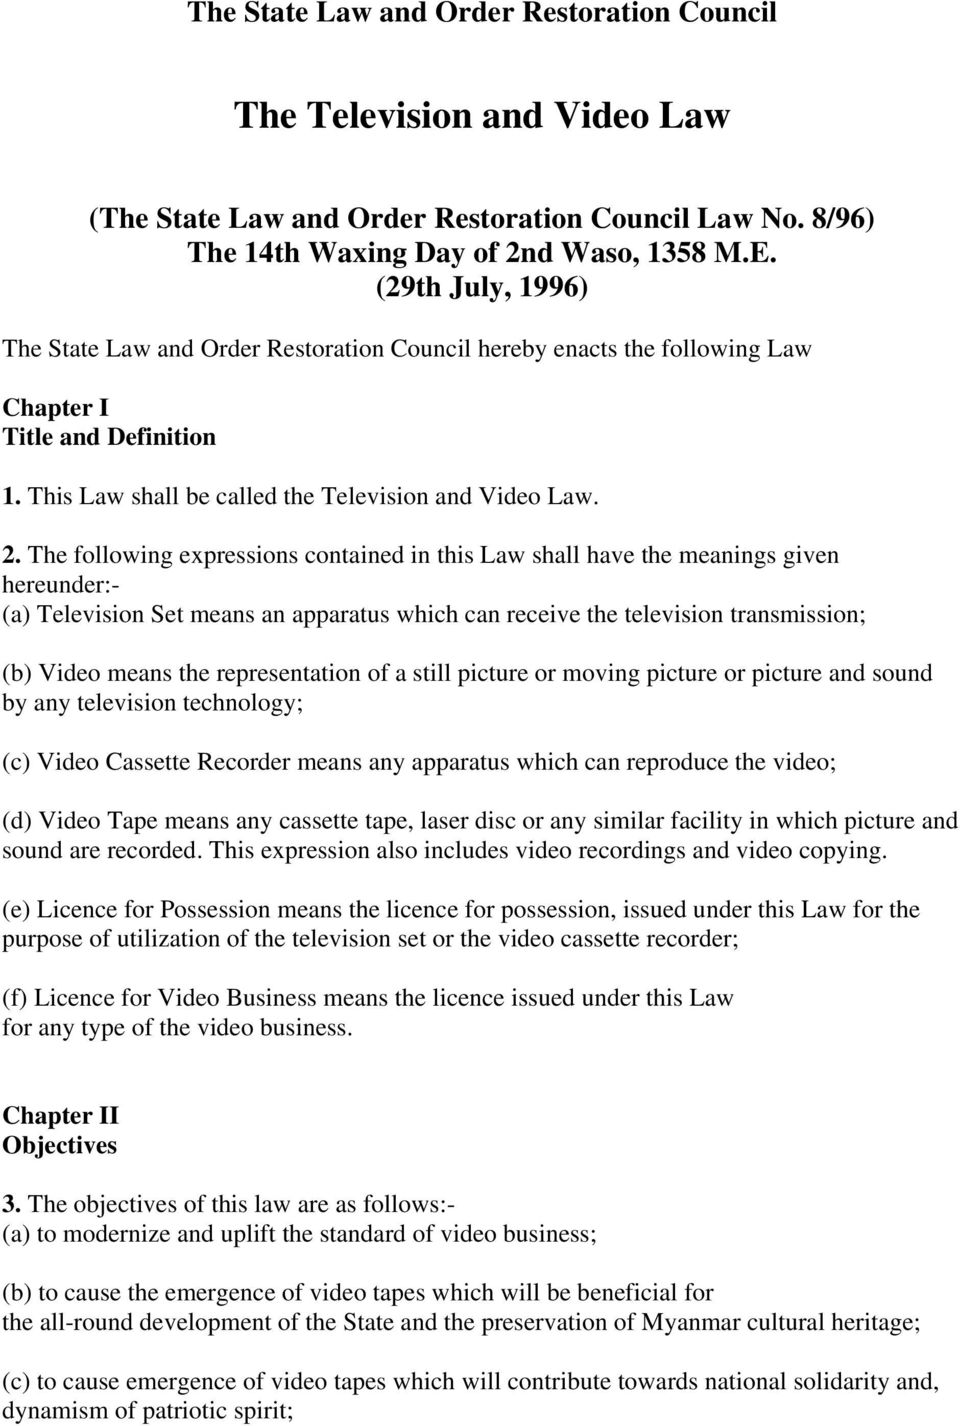 The following expressions contained in this Law shall have the meanings given hereunder:- (a) Television Set means an apparatus which can receive the television transmission; (b) Video means the